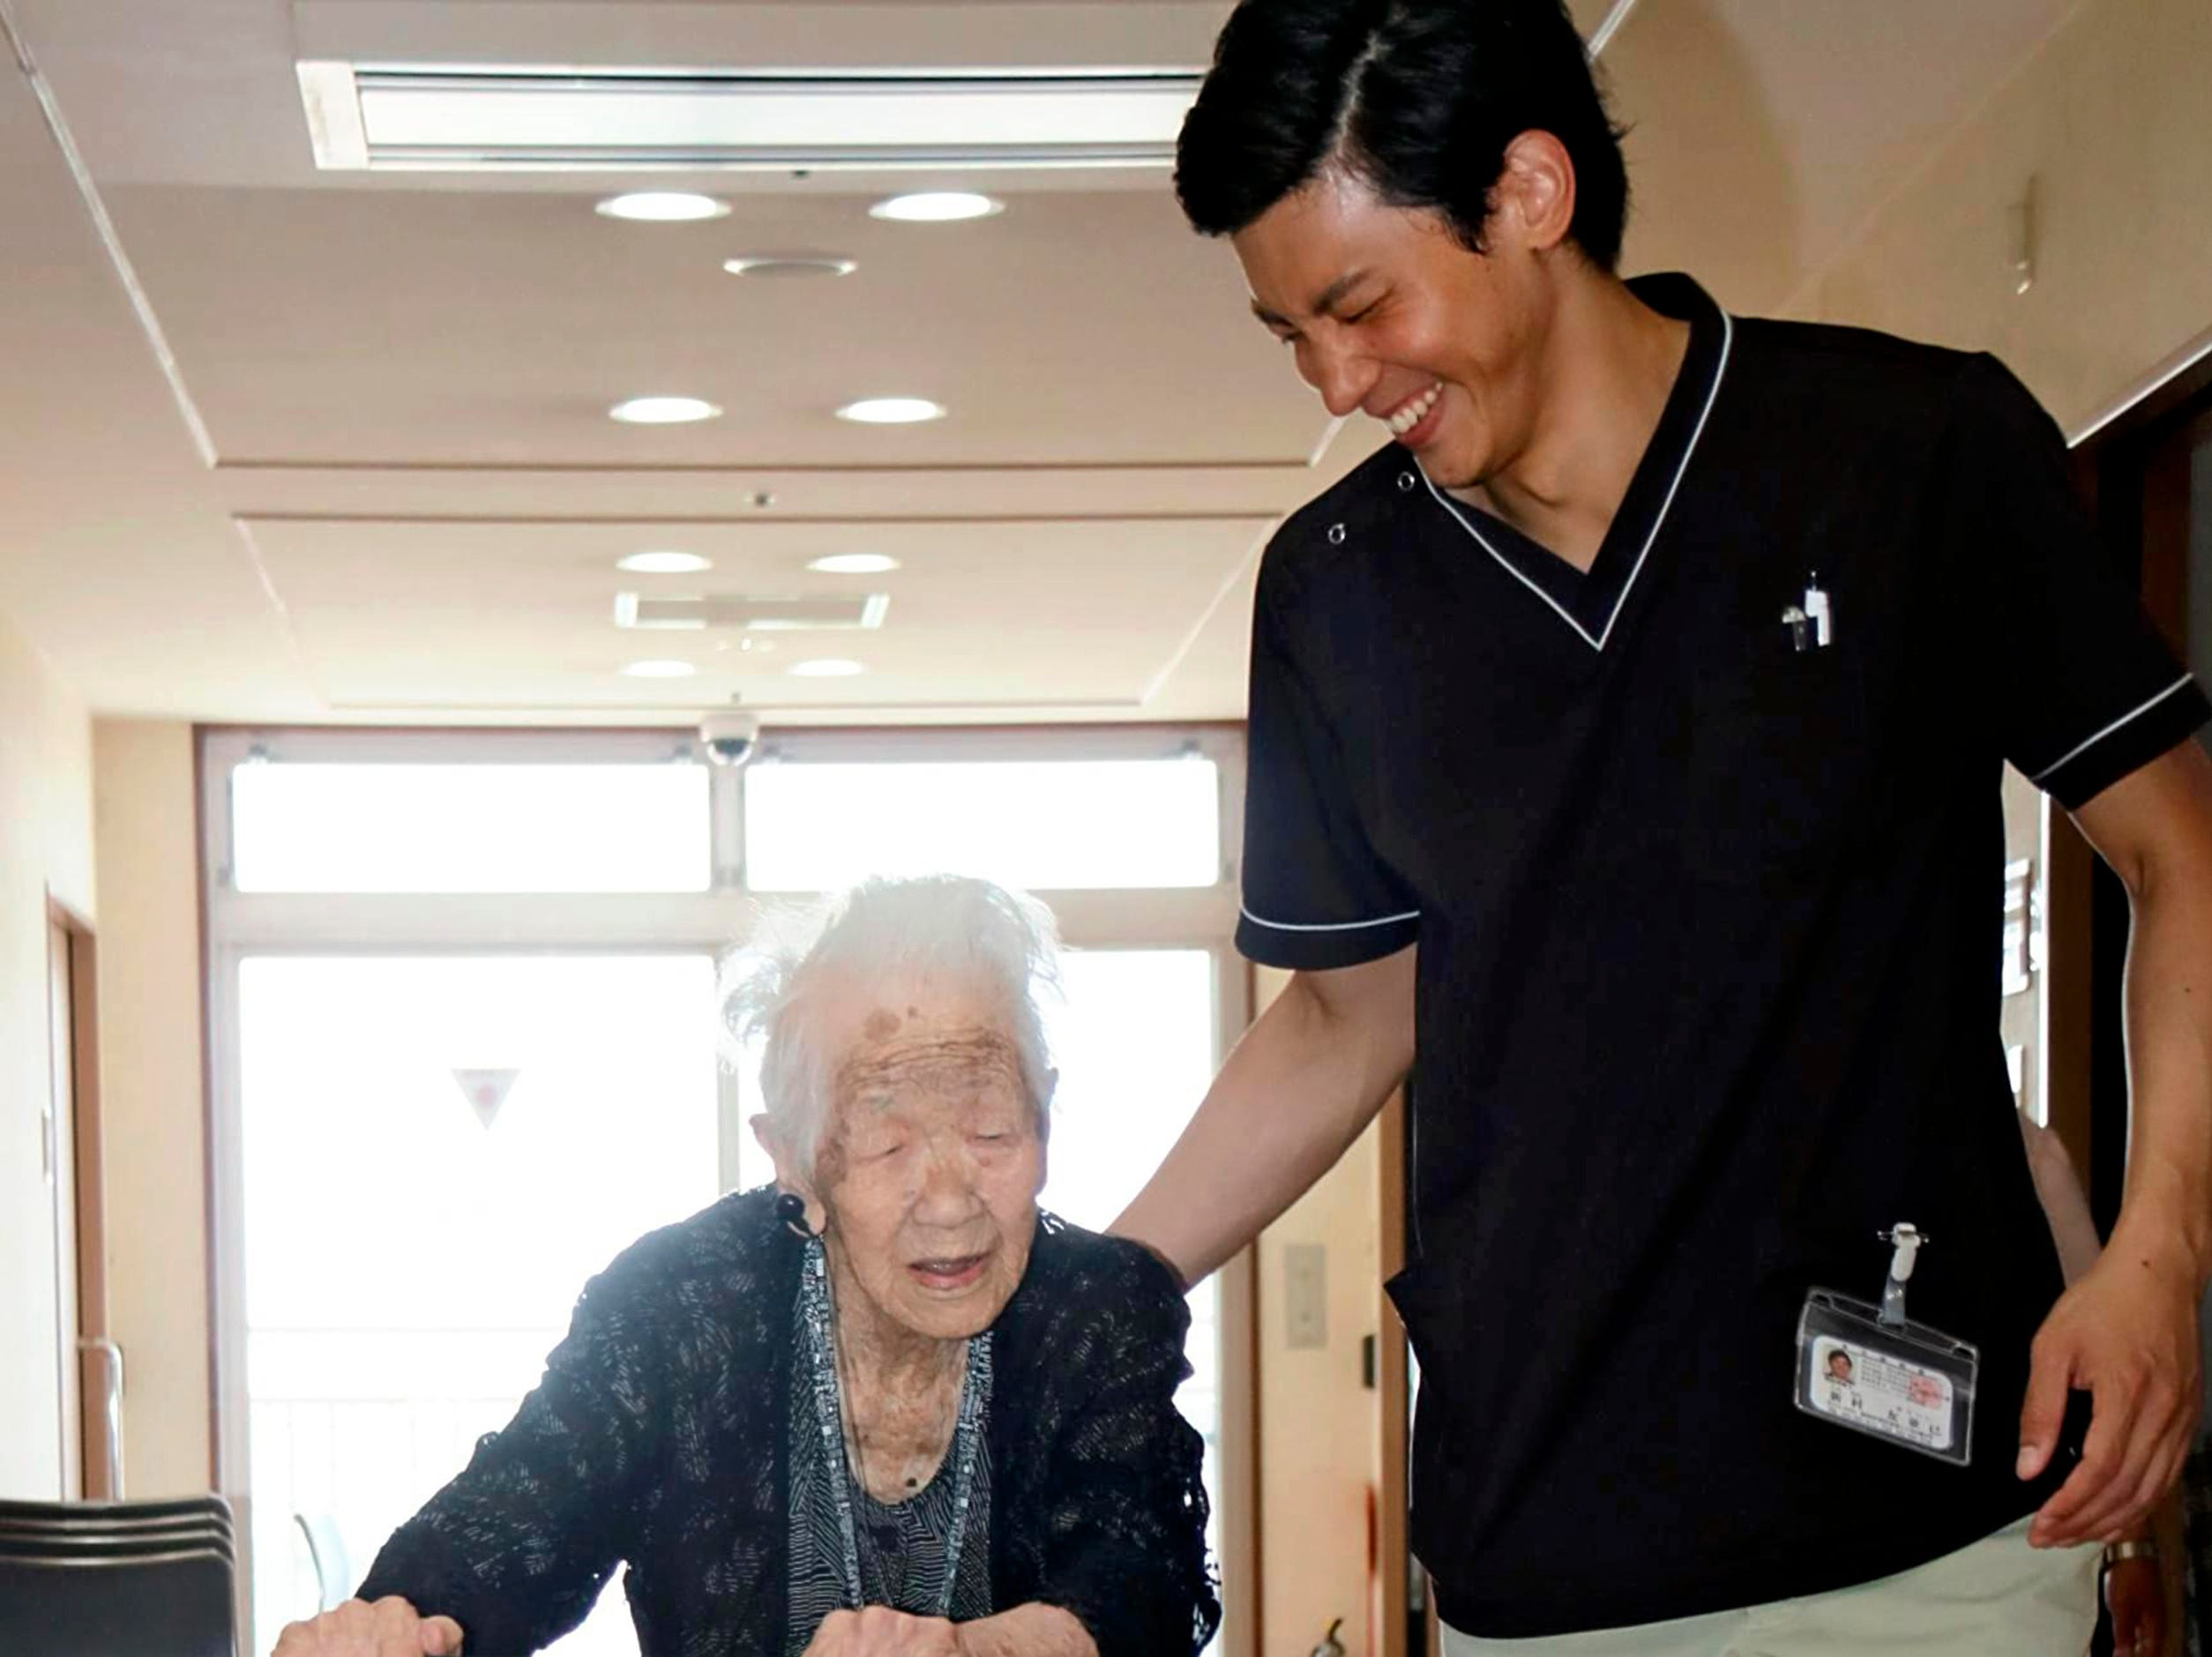 Kane Tanaka, Japan's oldest person, walks using a walker at a nursing home in Fukuoka on July 27, 2018. 115-year-old Tanaka spoke to media on the same day that she thanks everyone around her to live long. Tanaka was born in Fukuoka in 1903, married a rice shop owner and is blessed with children, grandchildren and great-grandchildren.